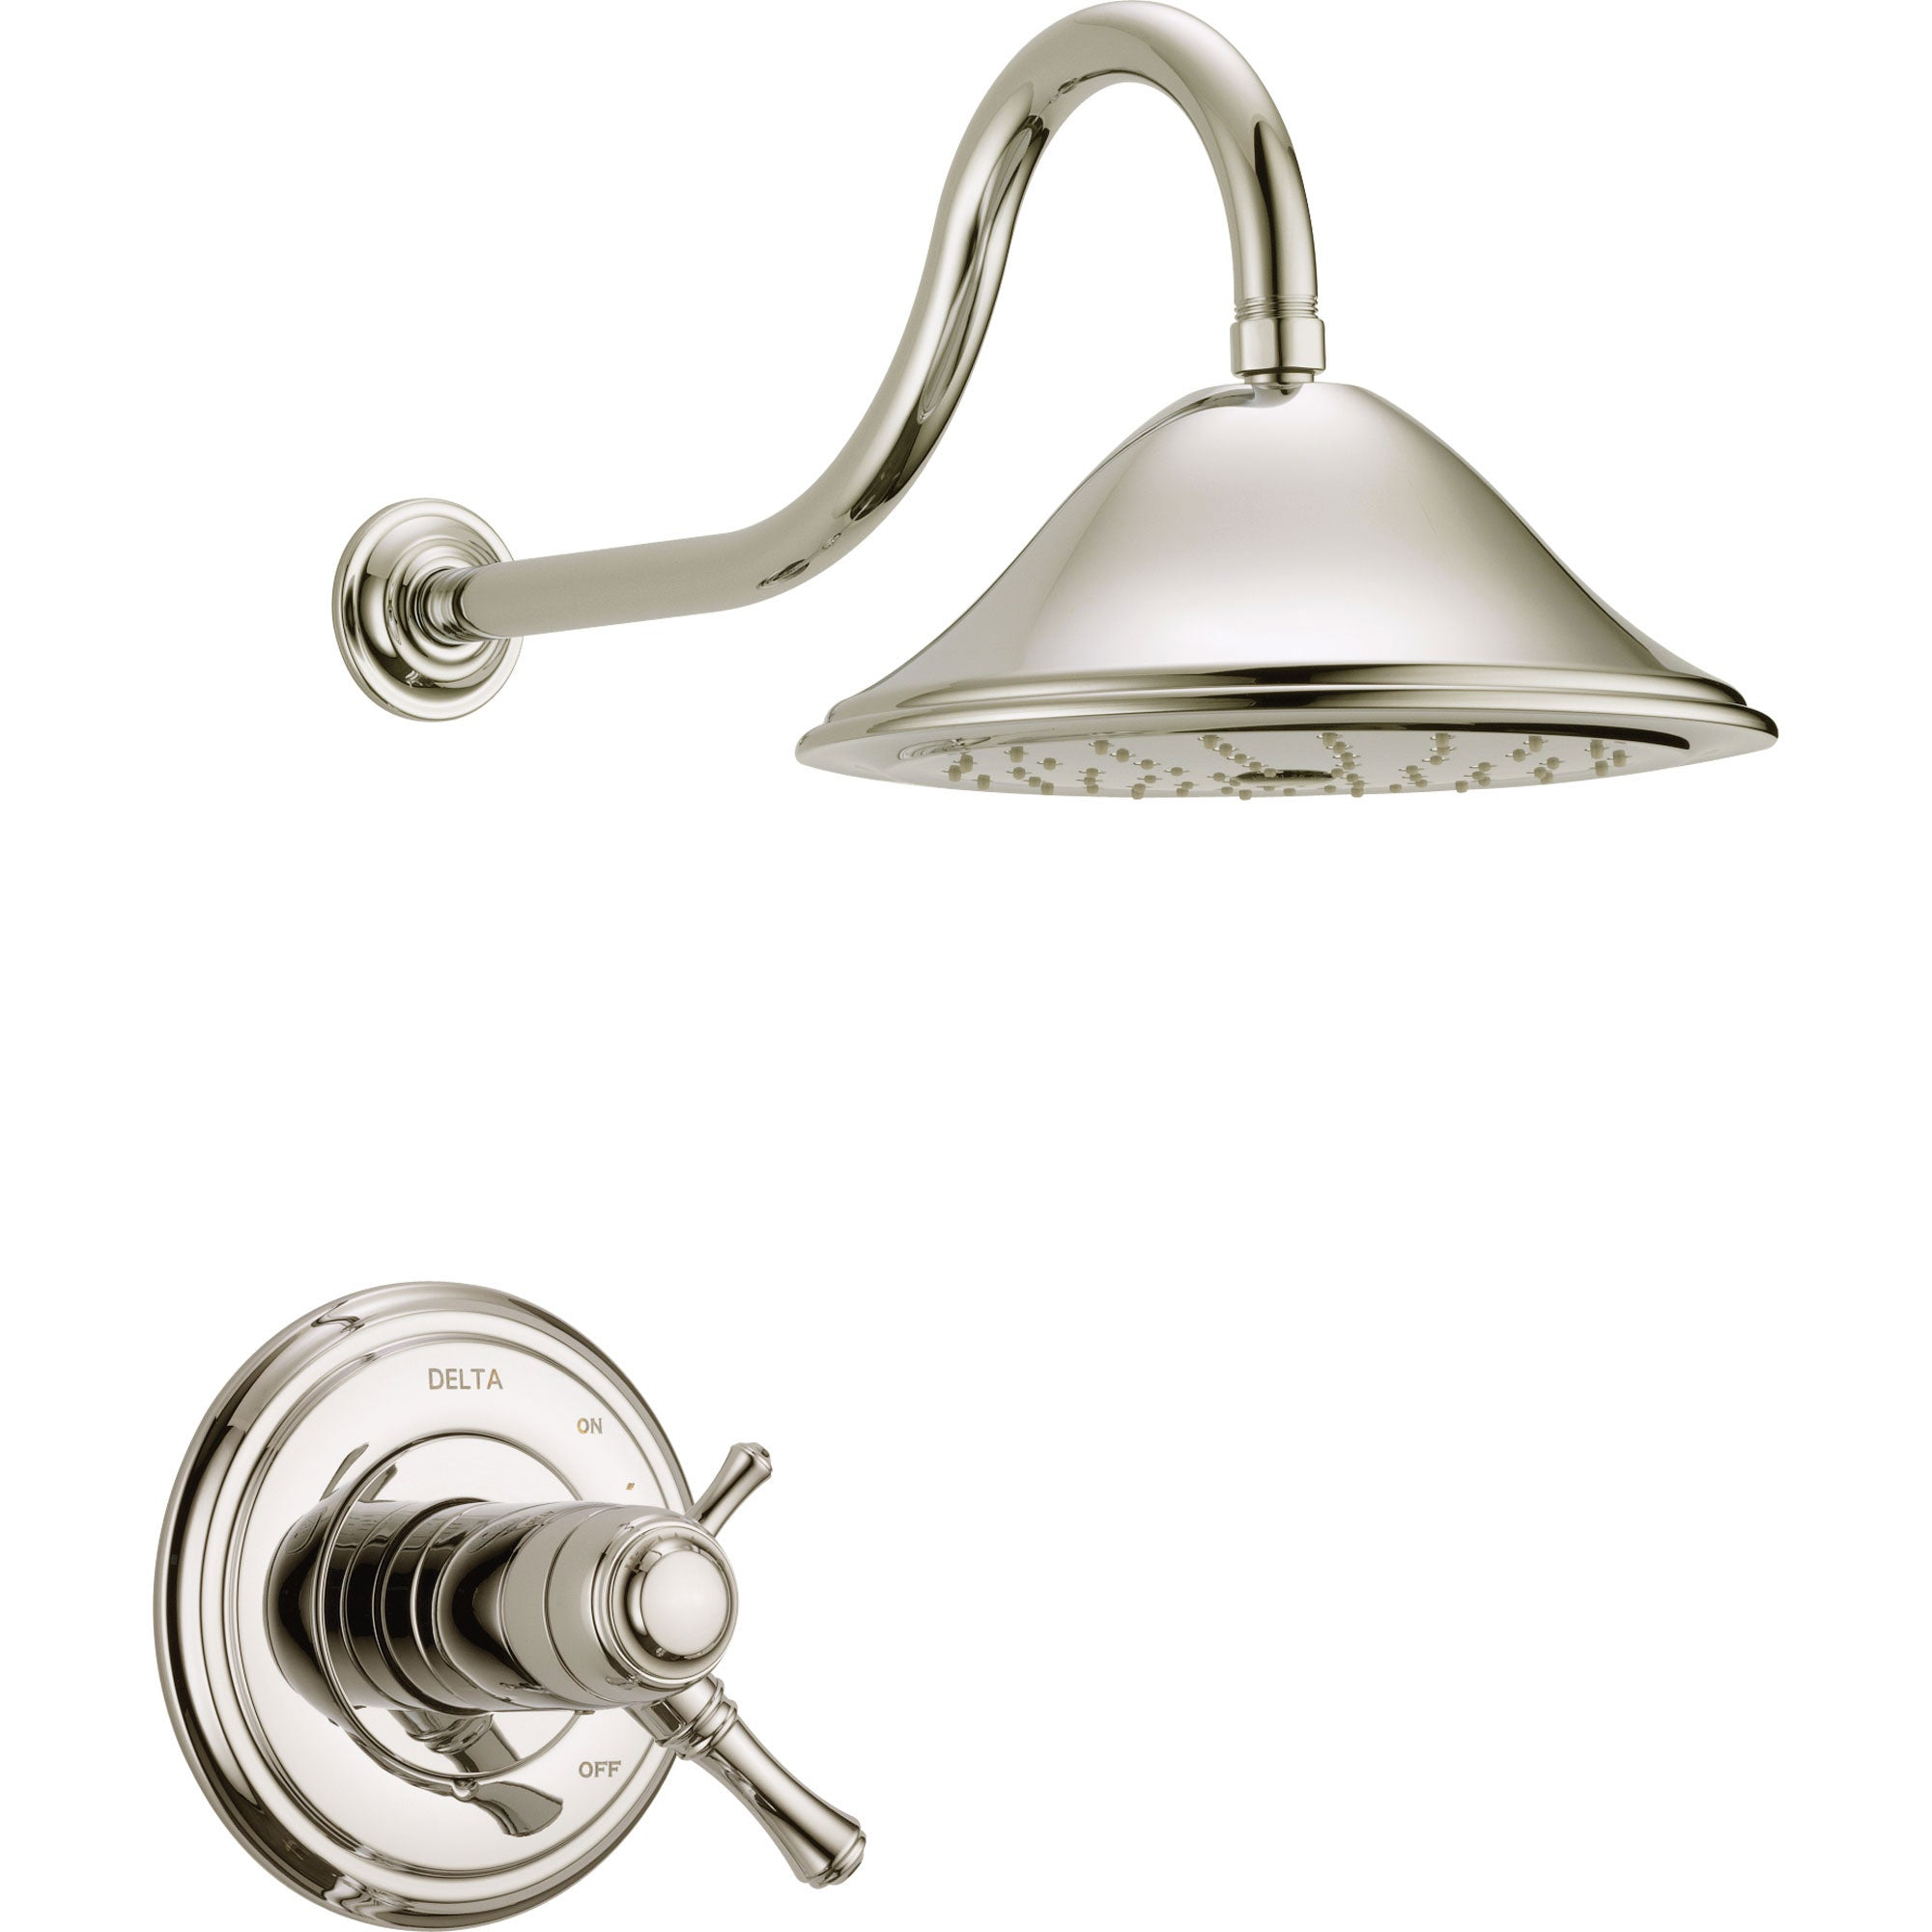 Delta Cassidy Polished Nickel Dual Thermostatic Large Shower Faucet Trim 584222